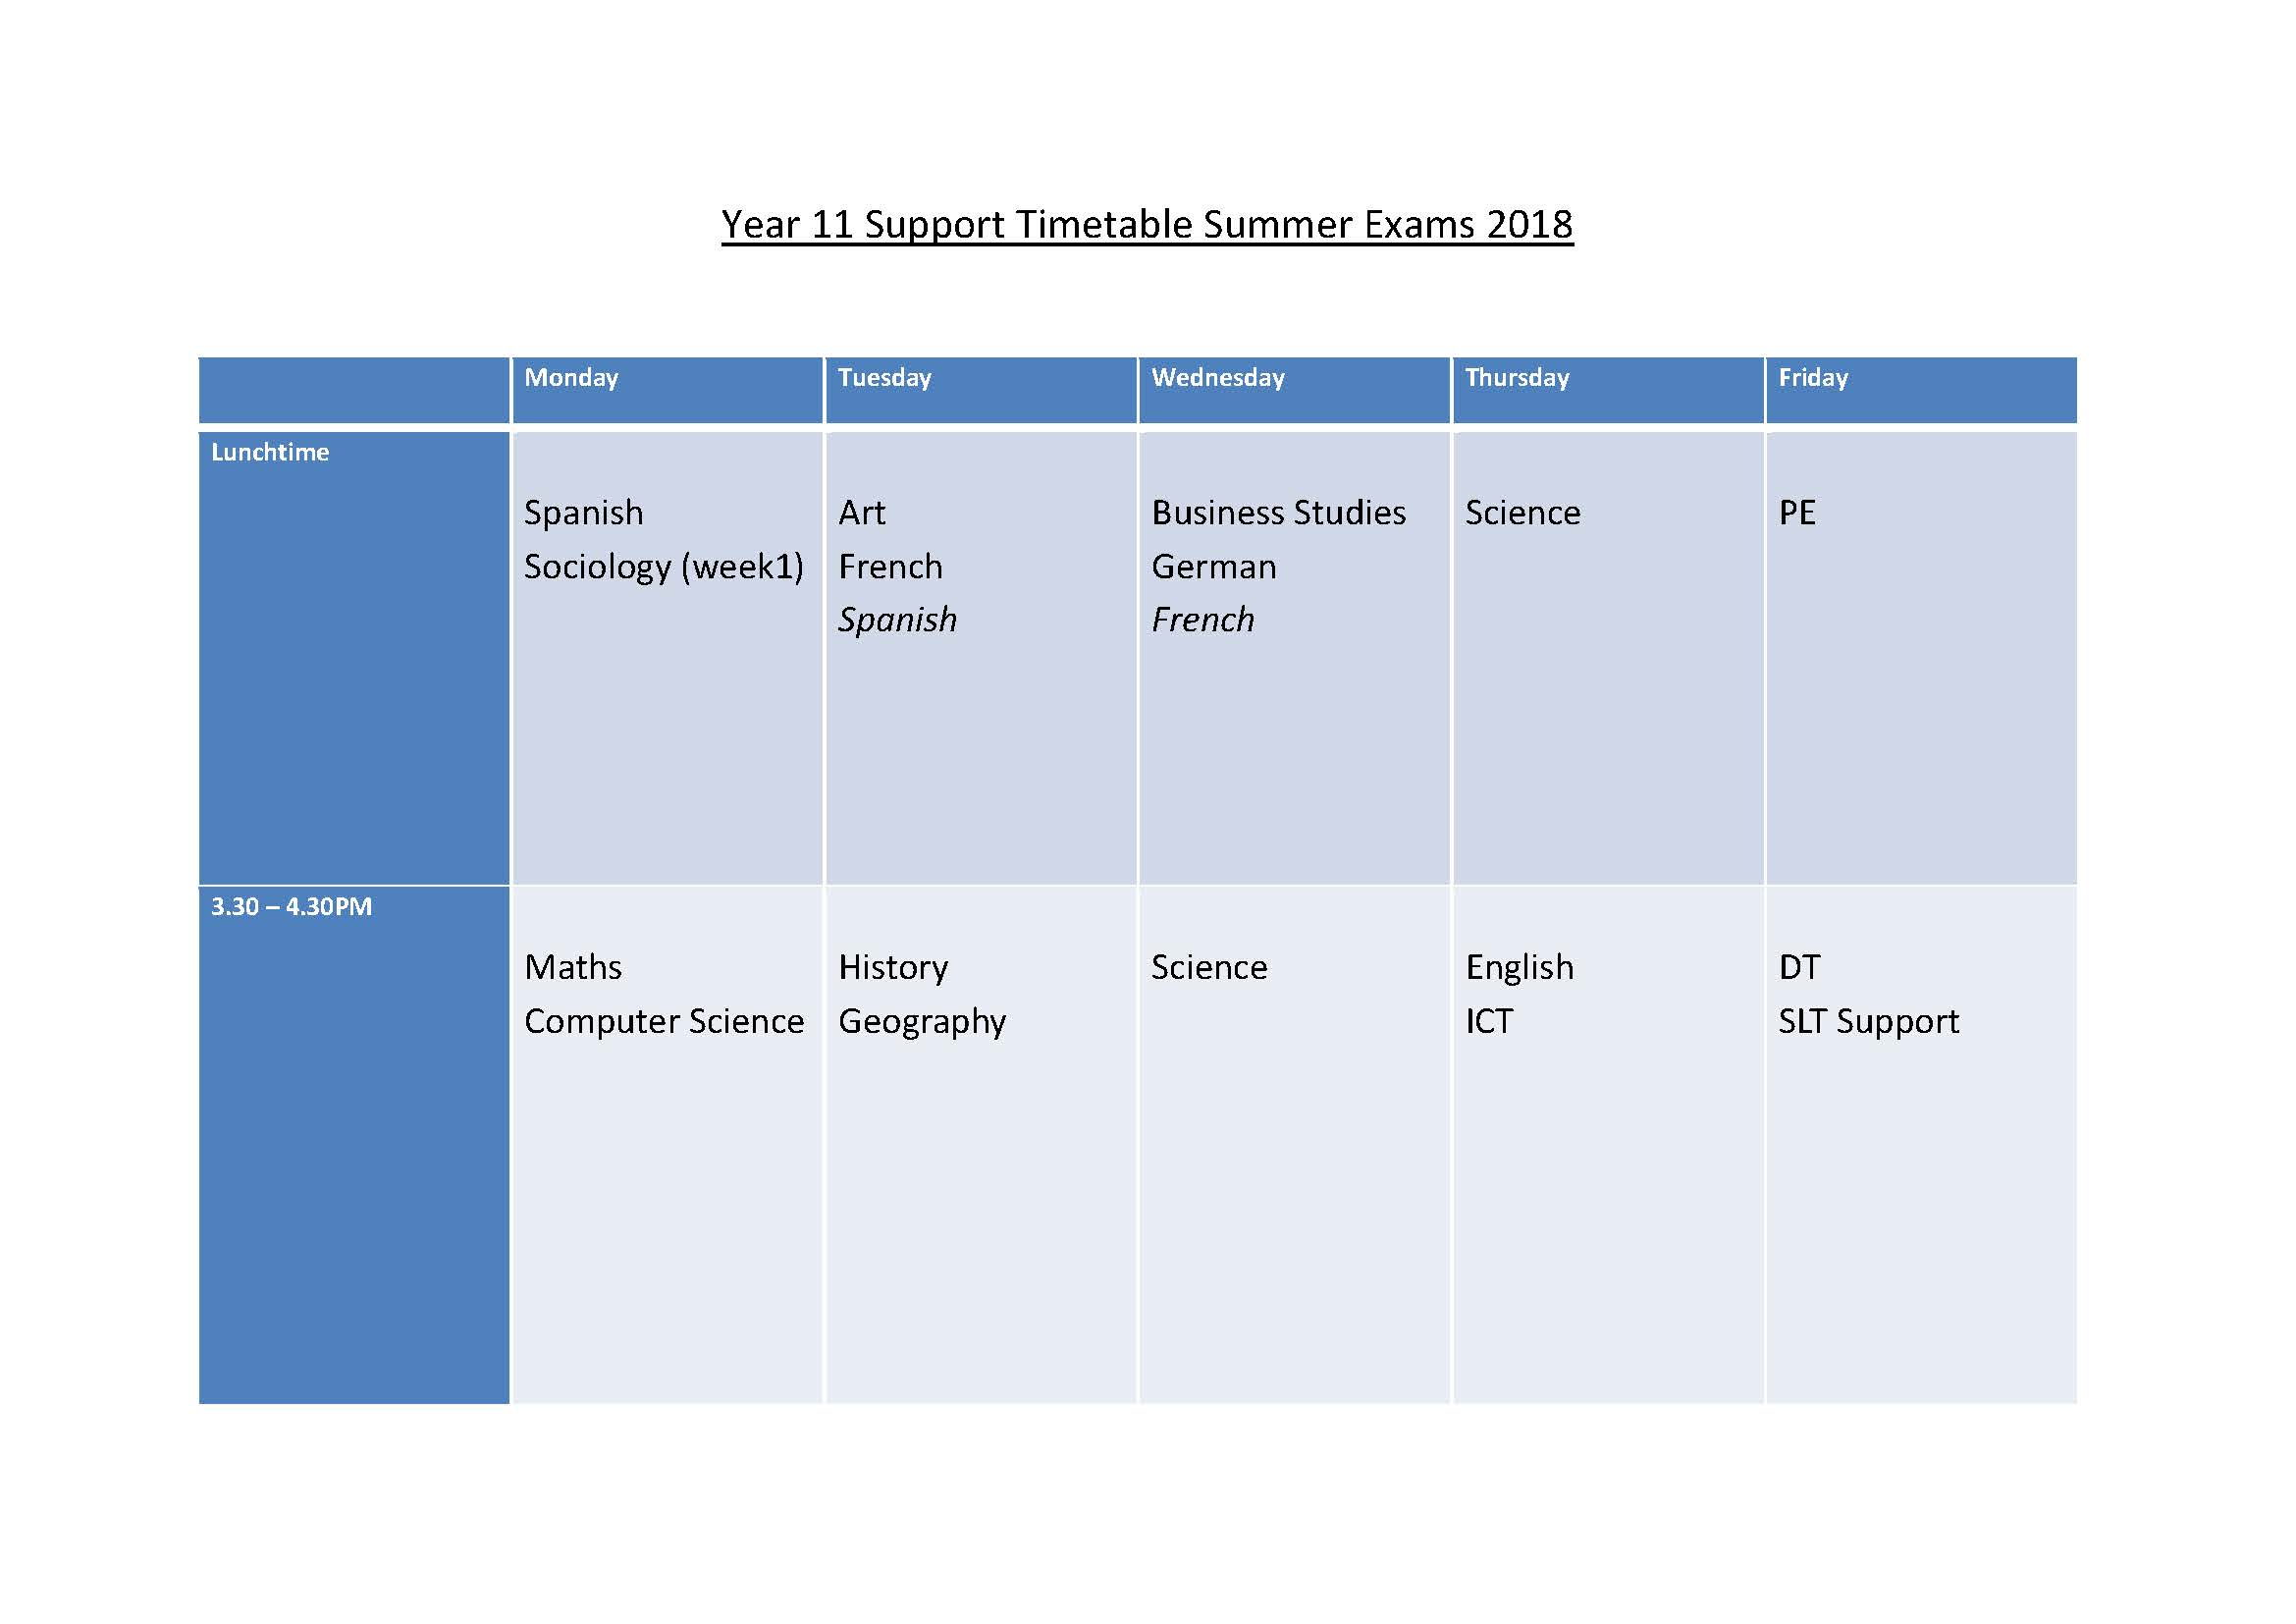 Year 11 Support Timetable Summer Exams 2018 Page 1